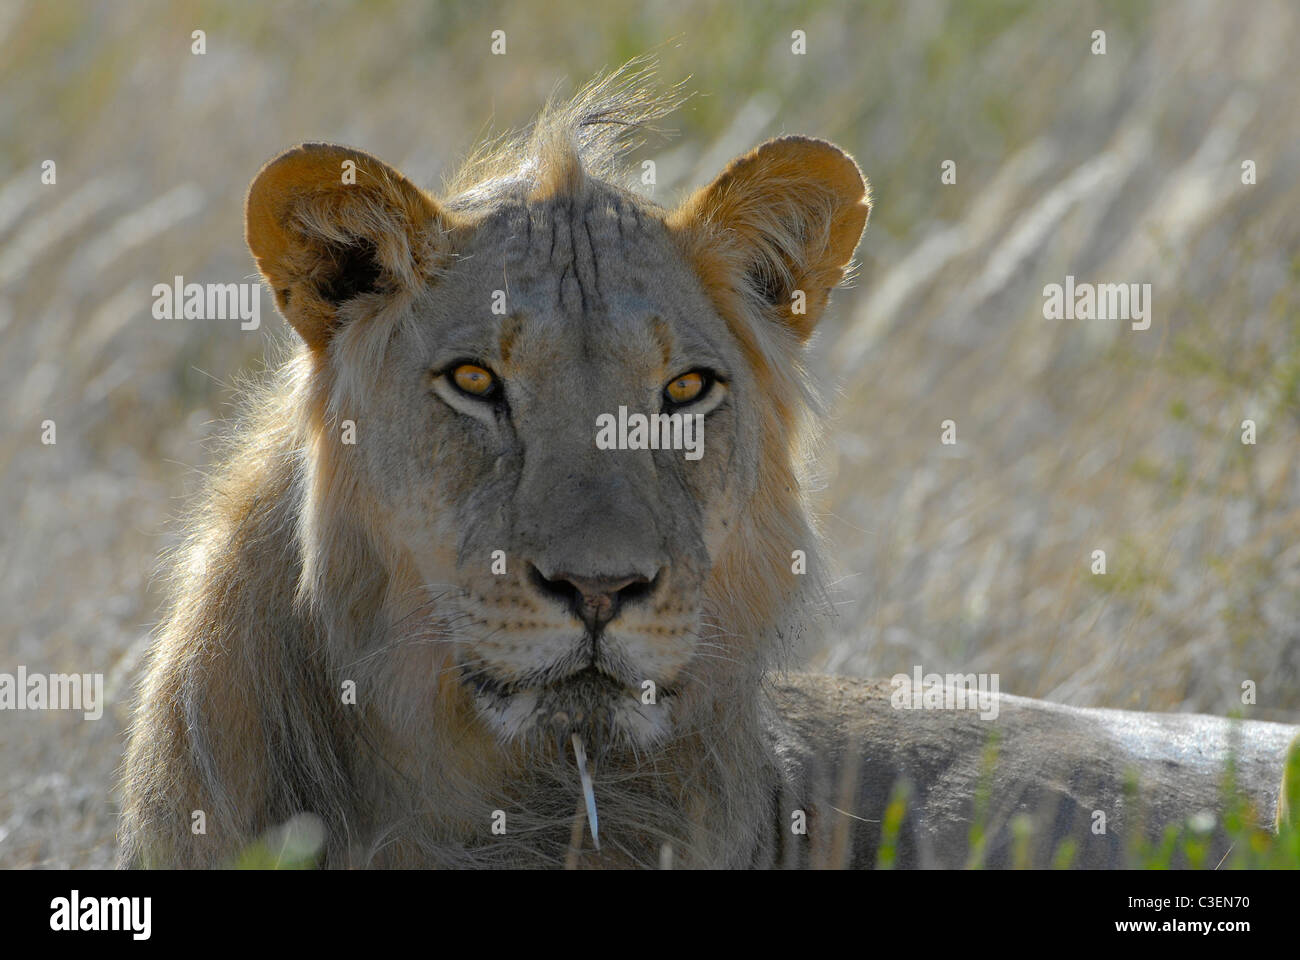 Game viewing in the Kgalagadi Transfrontier park, South Africa is affordable. Young male lion with porcupine quill - Stock Image